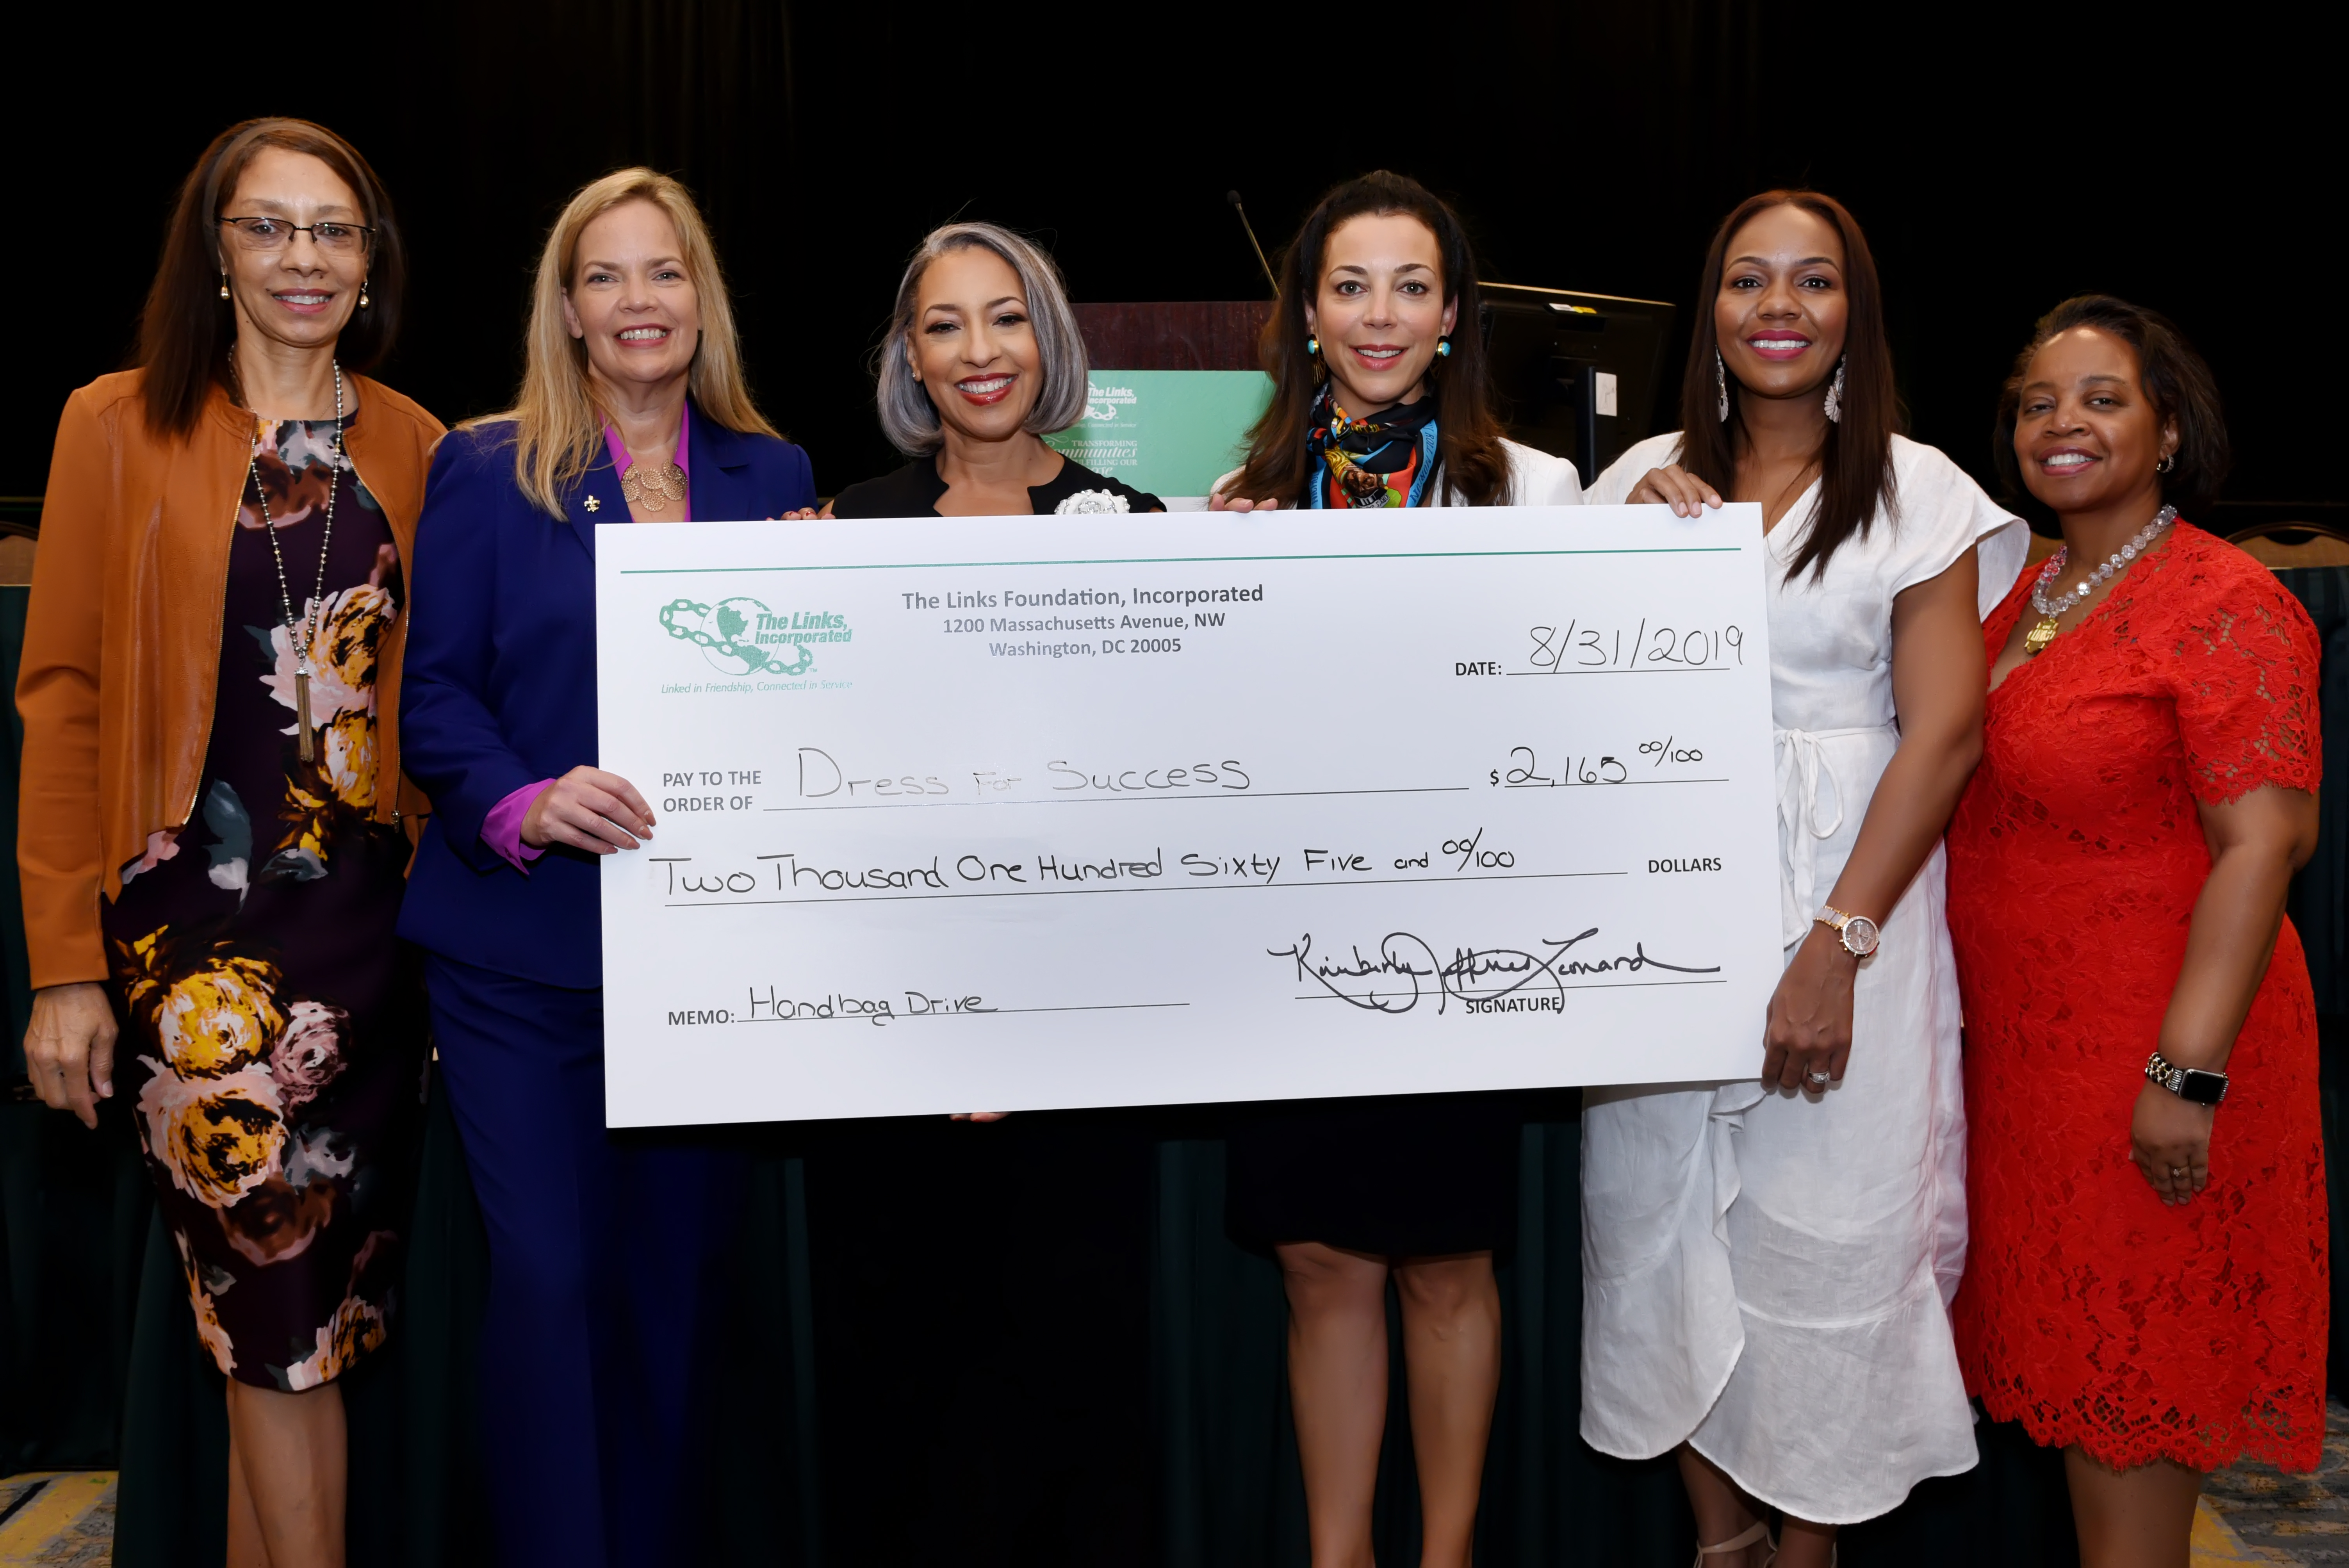 The Links Foundation, Incorporated Commits Funds and Supplies to Dress for Success New Orleans to Help Empower Local Women